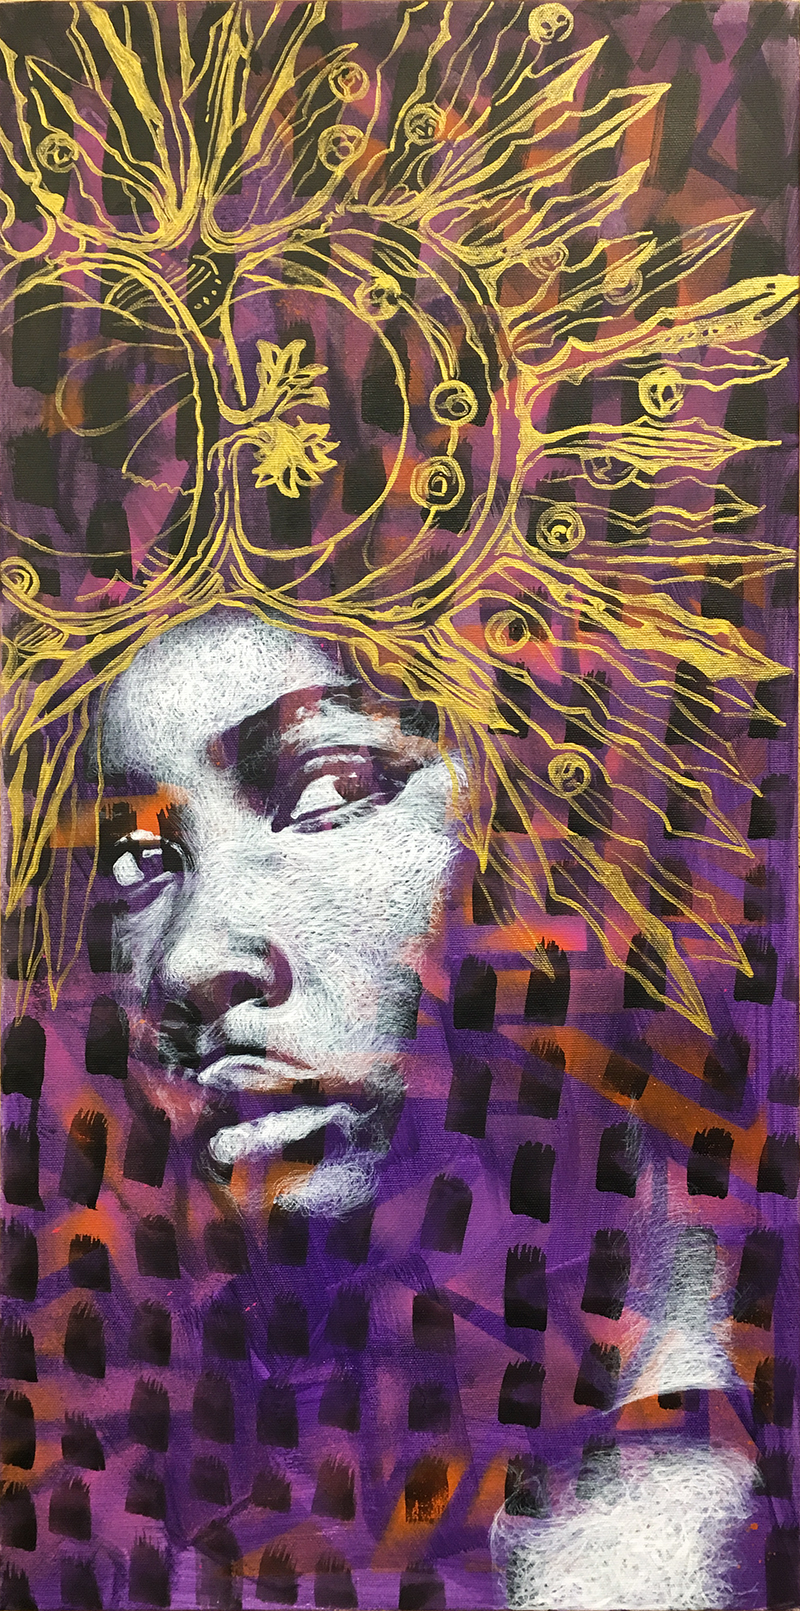 """Mardi Gras"" acrylic & spray painting on canvas 40x80cm / june 2018"